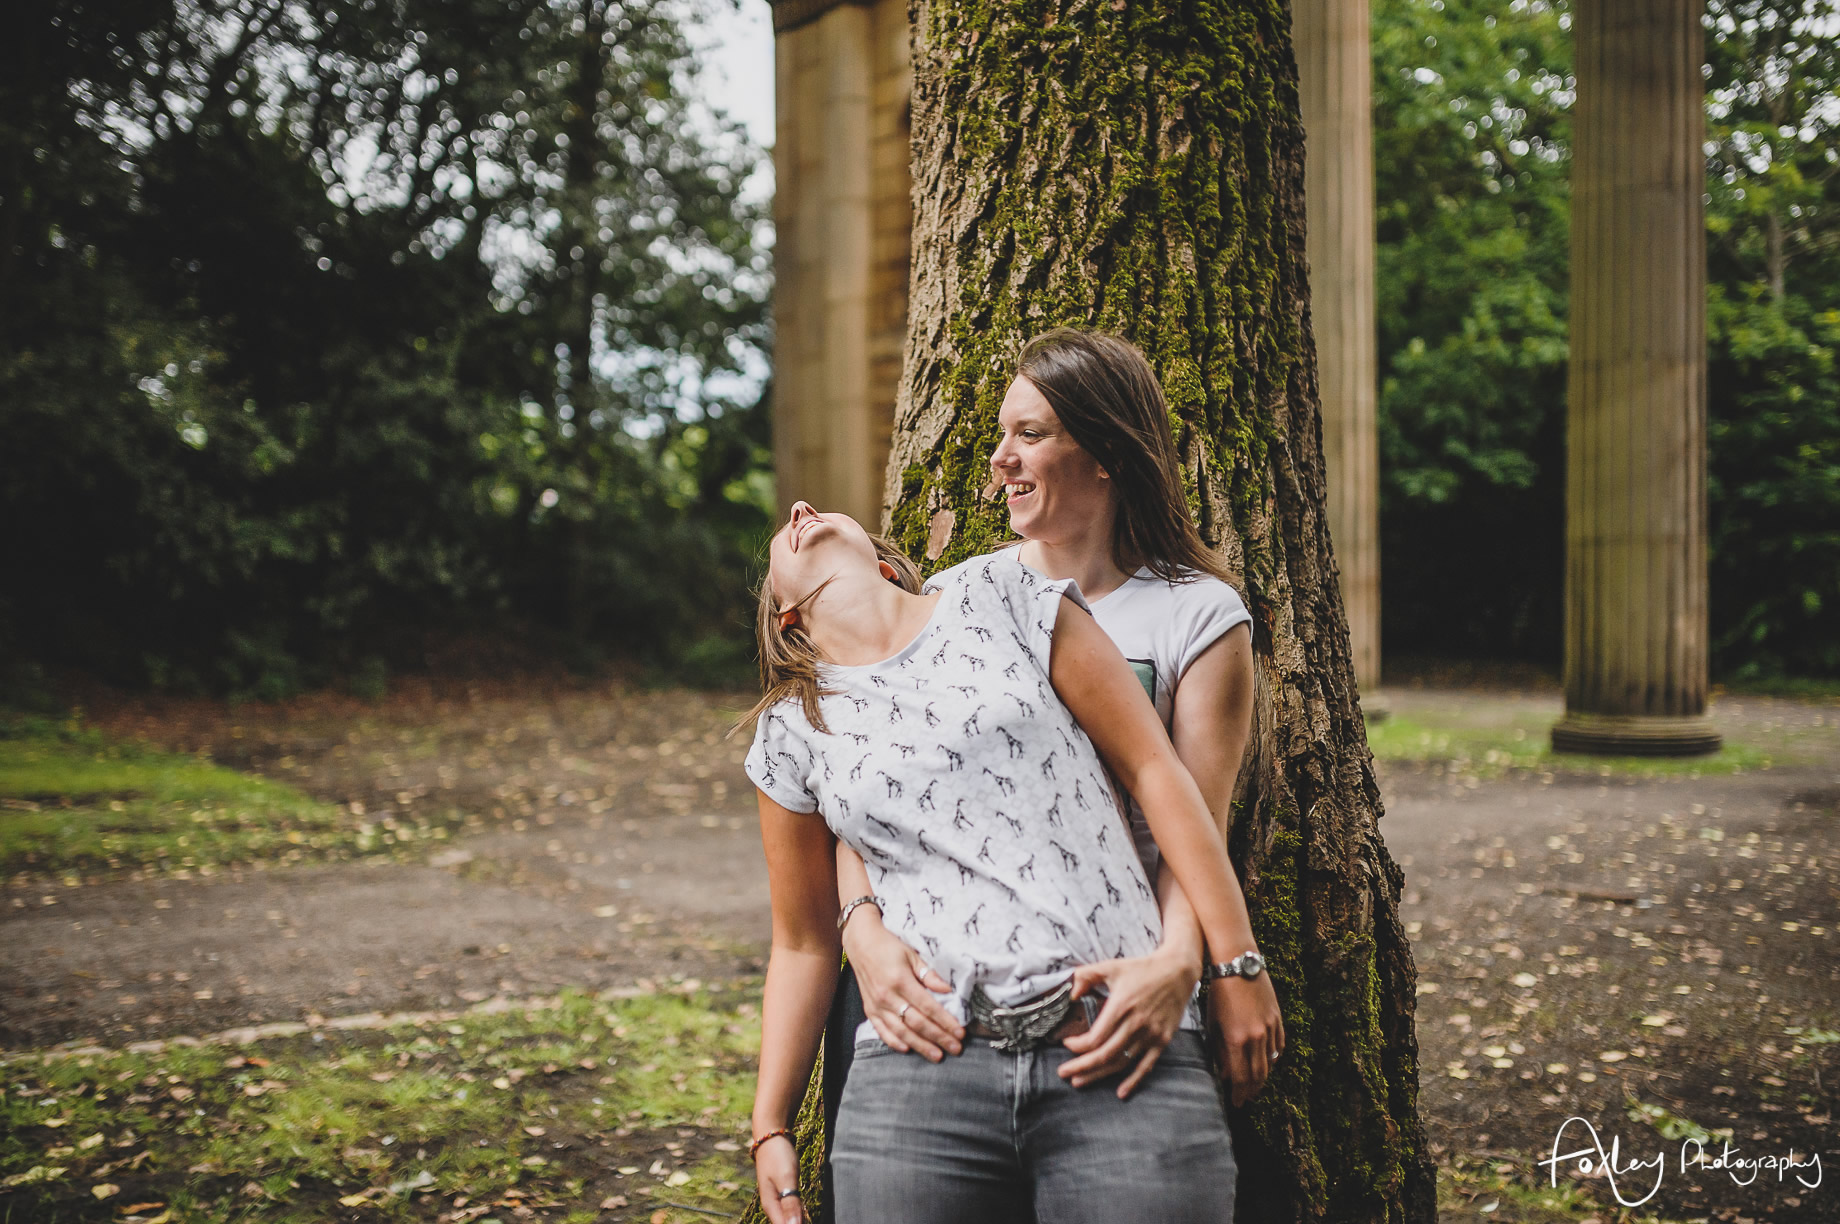 Fran-and-Eli-Pre-Wedding-Shoot-at-Heaton-Park-018